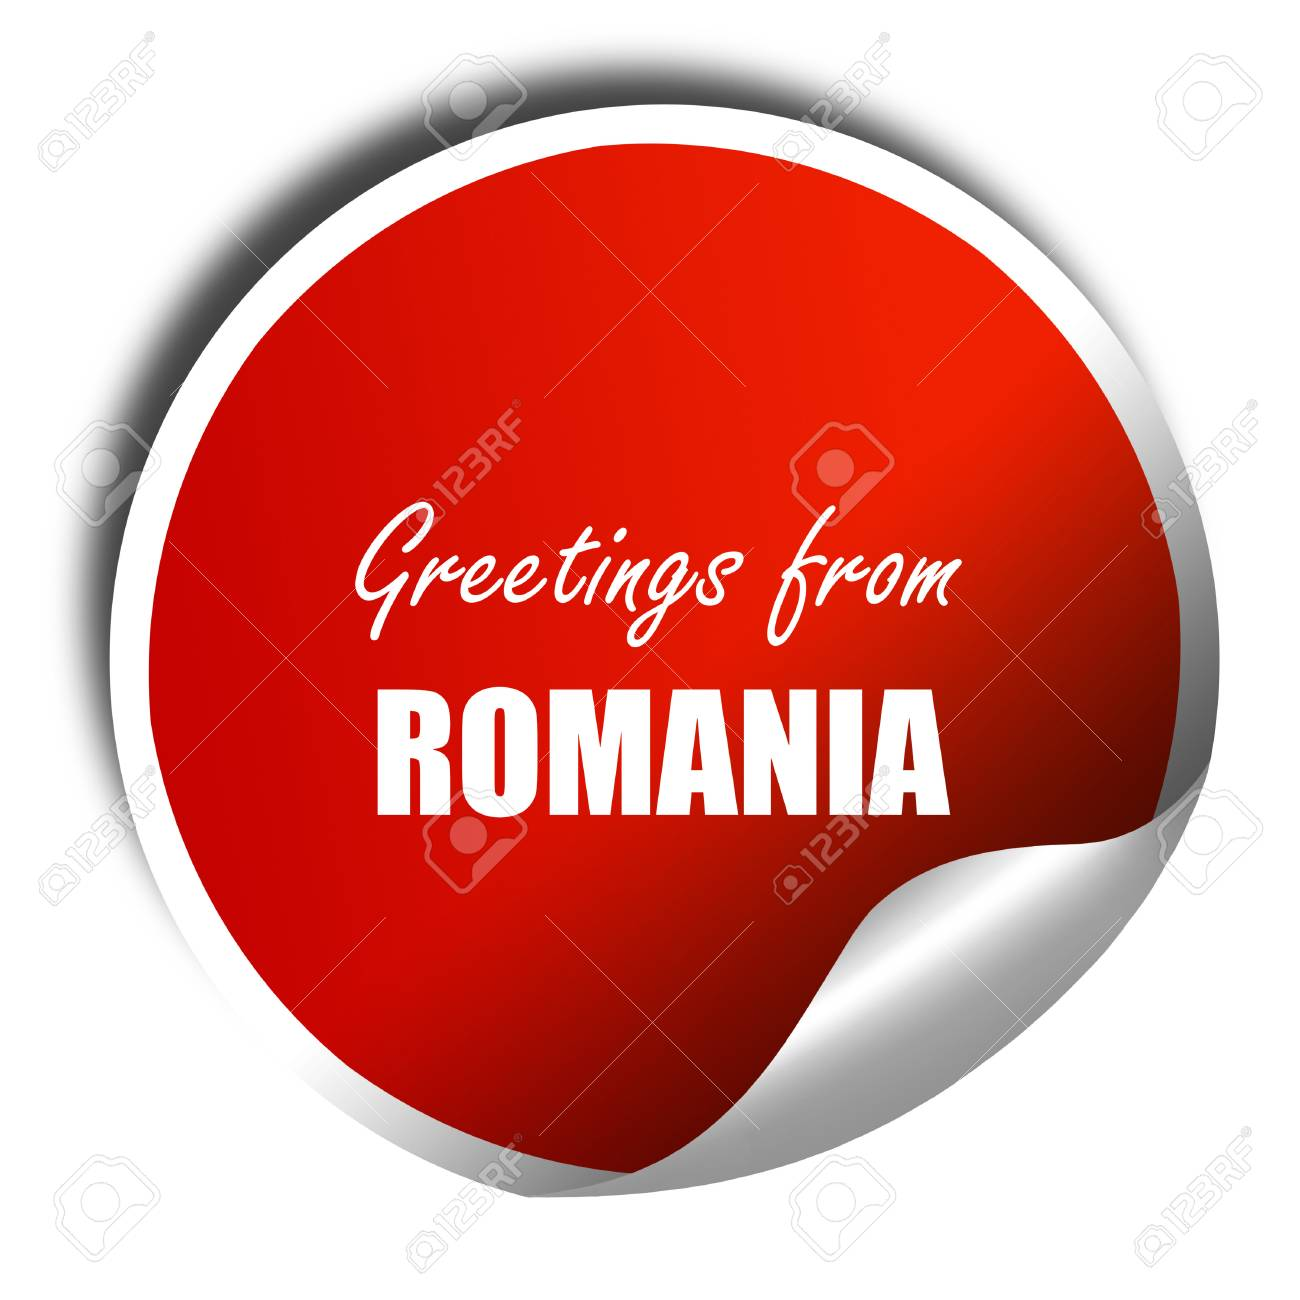 Greetings from romania card with some soft highlights 3d rendering greetings from romania card with some soft highlights 3d rendering red sticker with white m4hsunfo